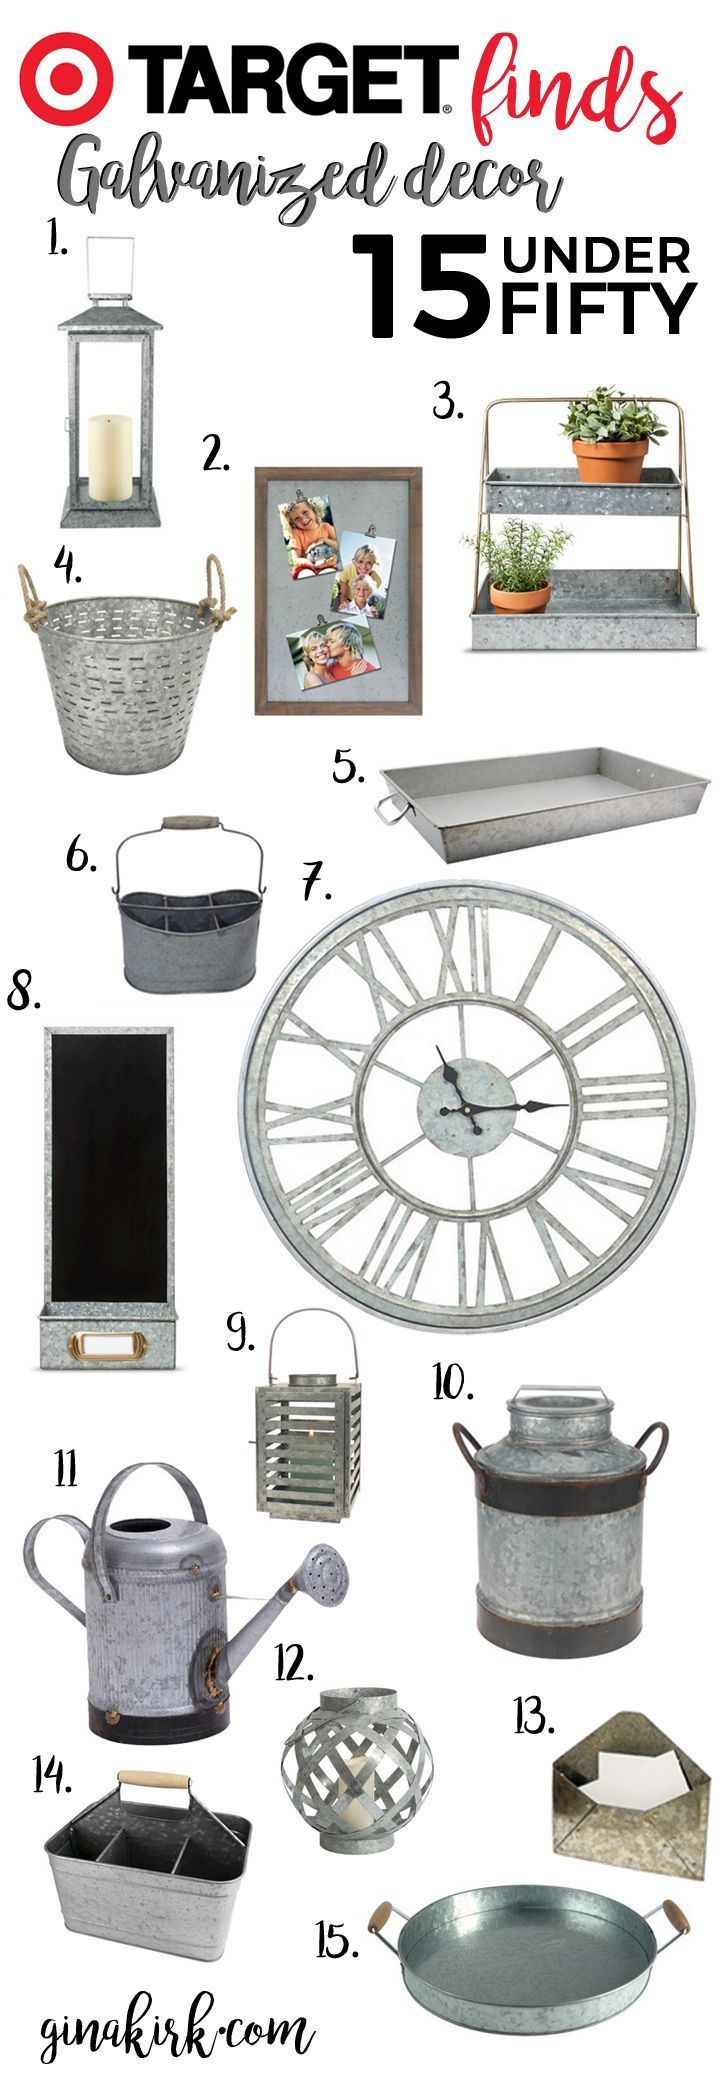 25 Best Ideas About Farmhouse Accessories And Decor On Pinterest Bathroom Counter Decor